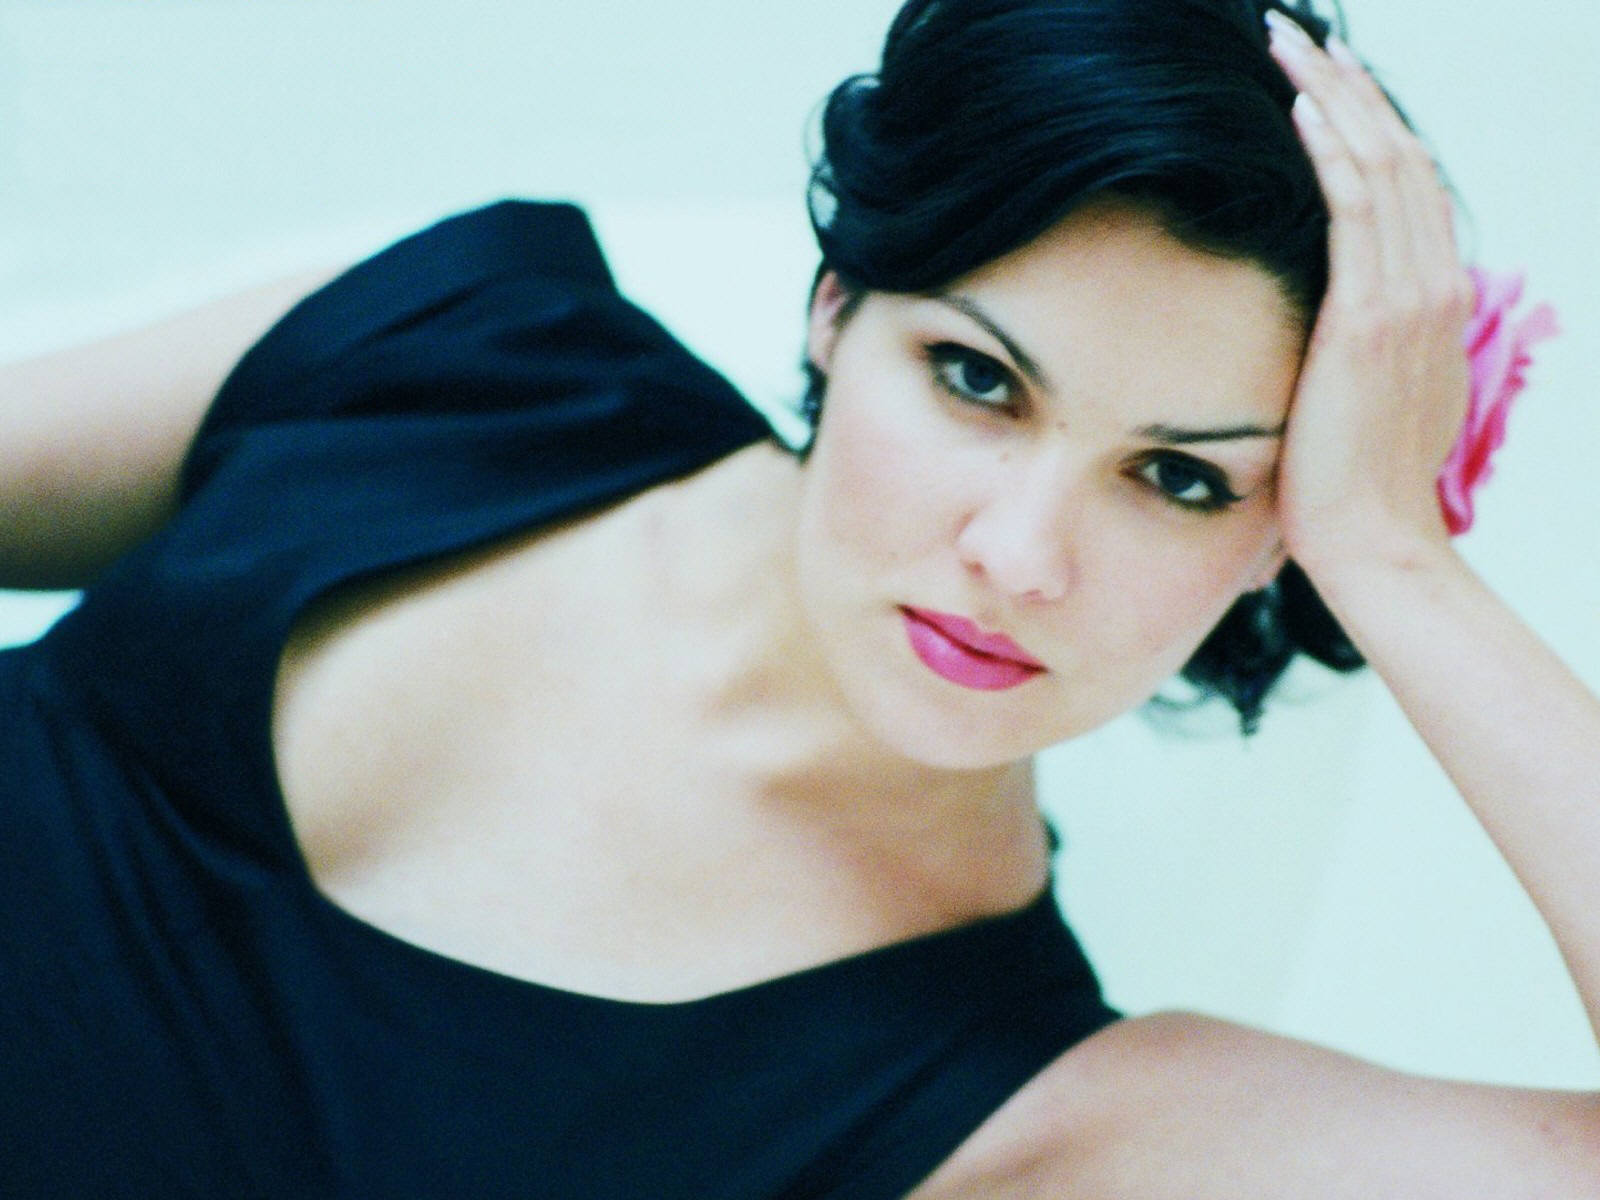 Hot Anna Netrebko  Girls Pictures  Top Models  Hot -7184